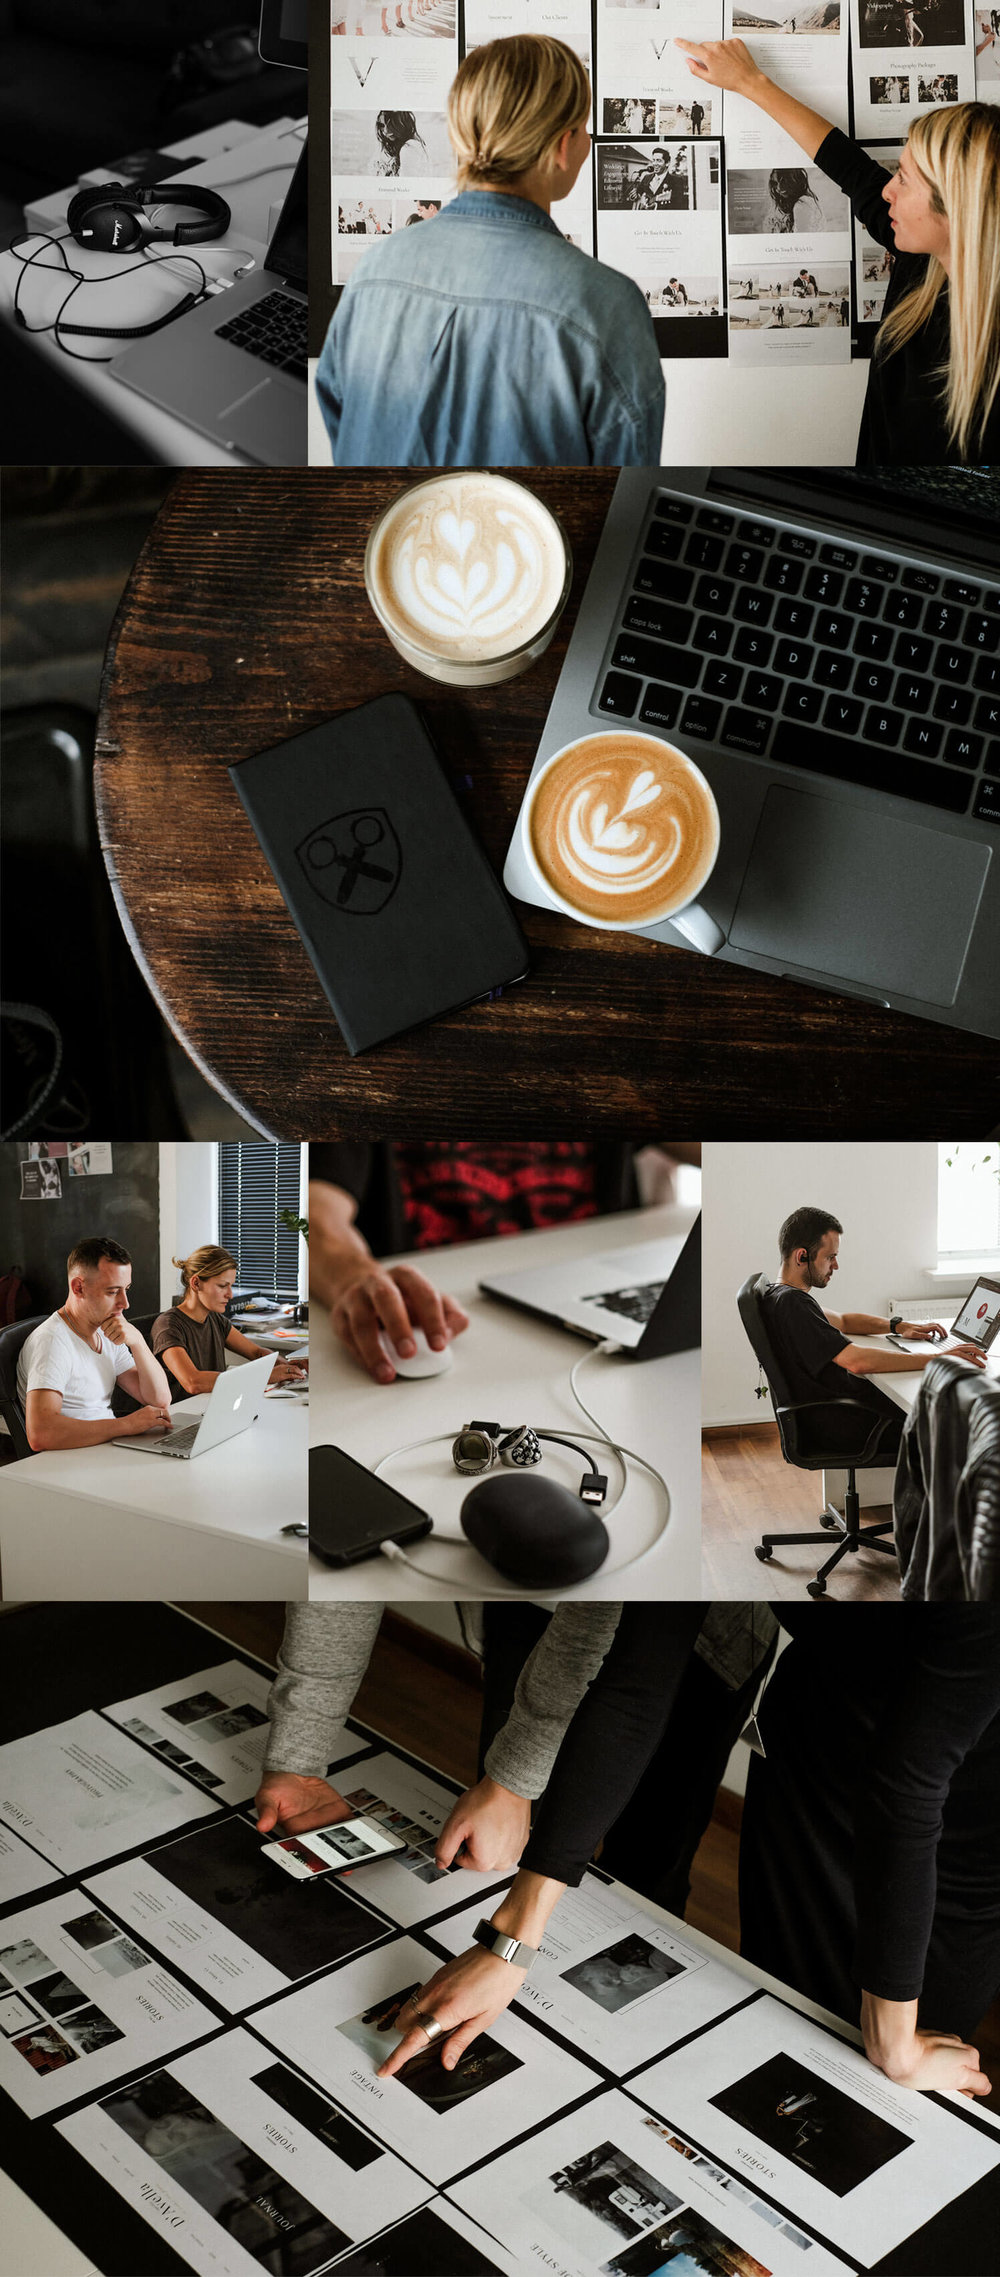 Squaremuse-designs-for-squarespace-website-design-creative-team-apple-coffee-iphone.jpg